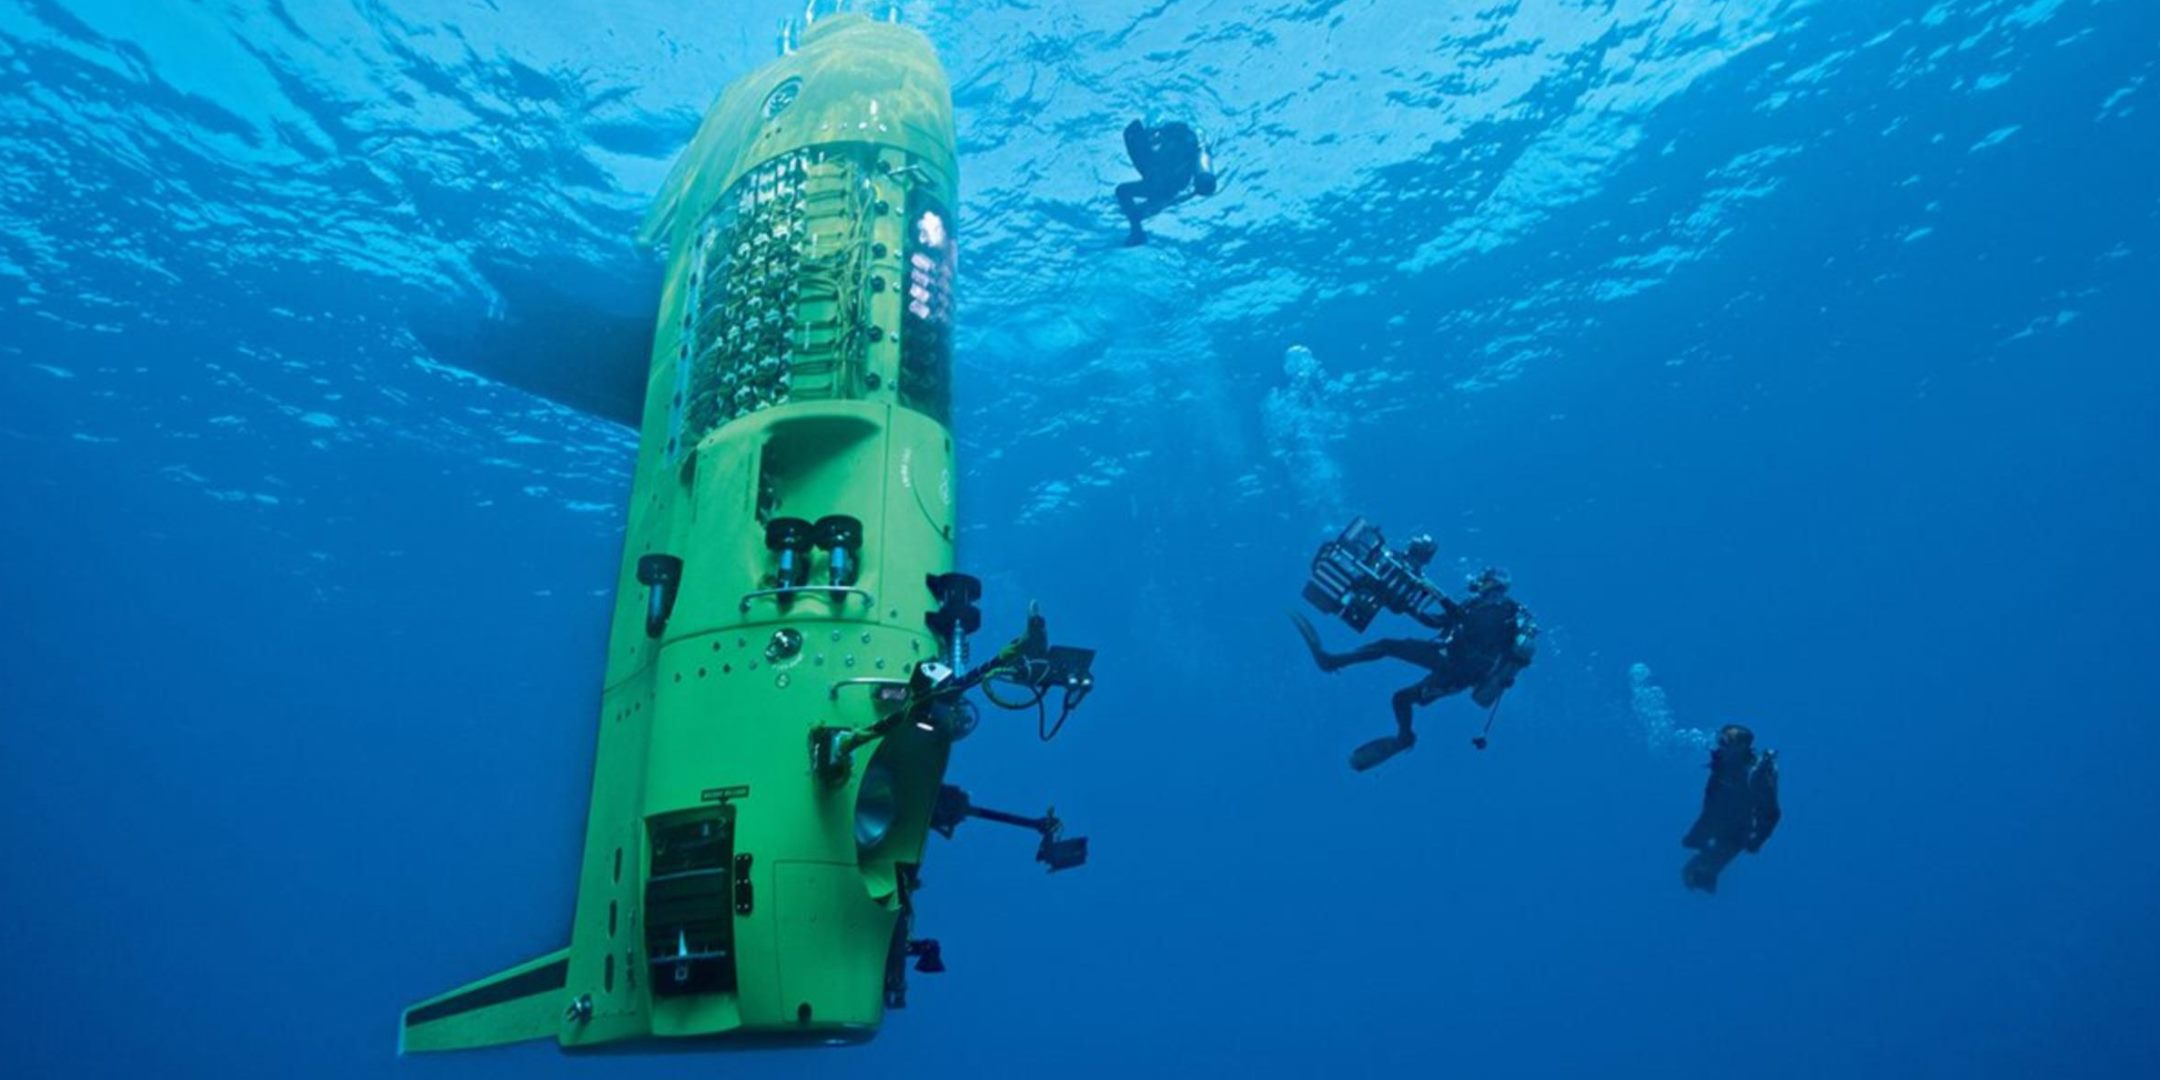 On March 26 2012 Cameron made a record-breaking solo dive to the earth's deepest point, the bottom of the Challenger Deep in the Mariana Trench. Image: Mark Thiessen/NatGeoCreative.